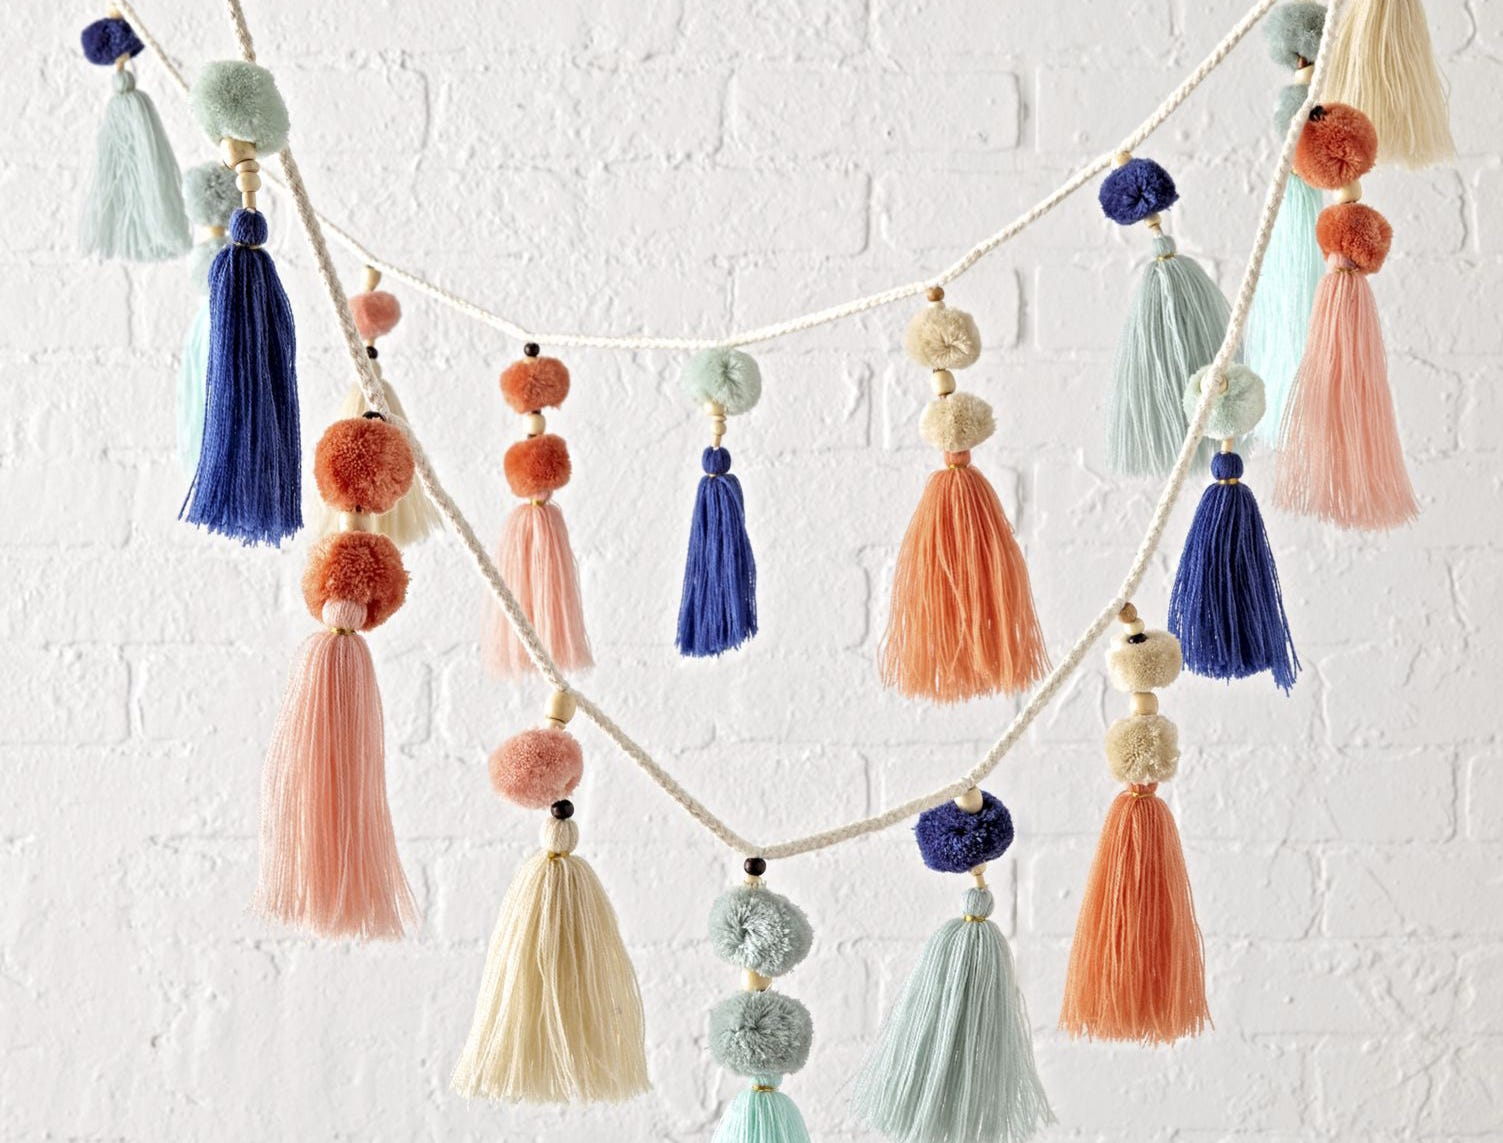 """Playful tassels and pompoms in peachy pastels, teamed with pale to deep blue are """"like a party for your decor,"""" says Crate and Barrel."""